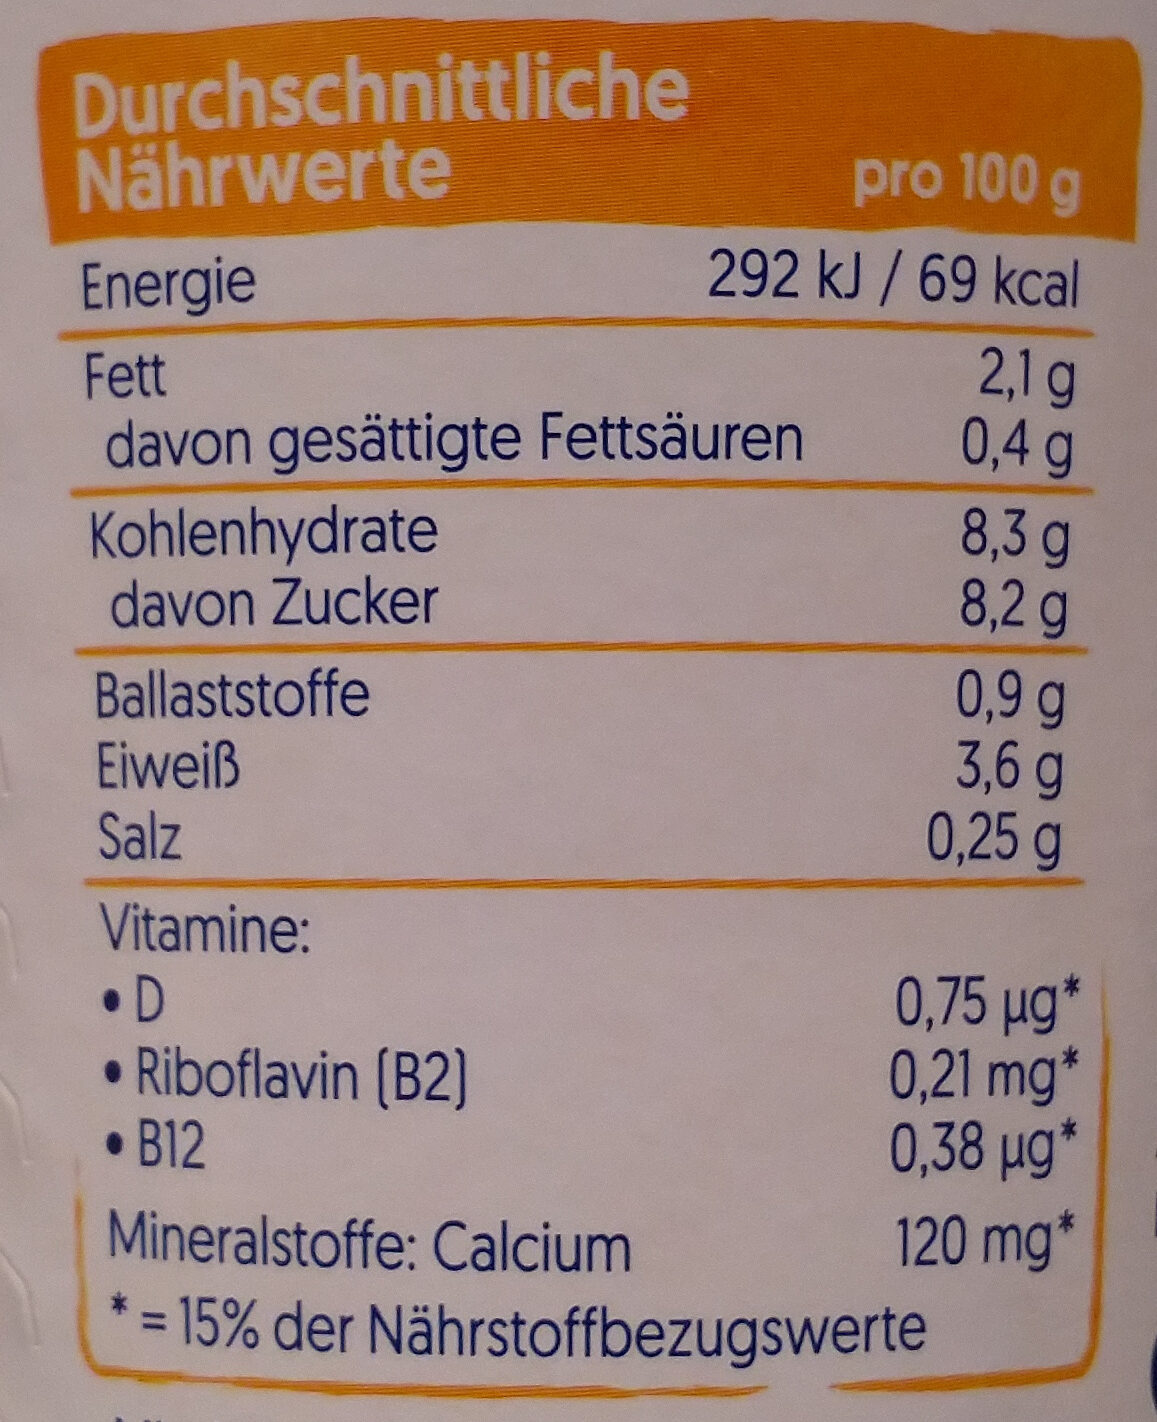 Alpro Pfirsich - Nutrition facts - de